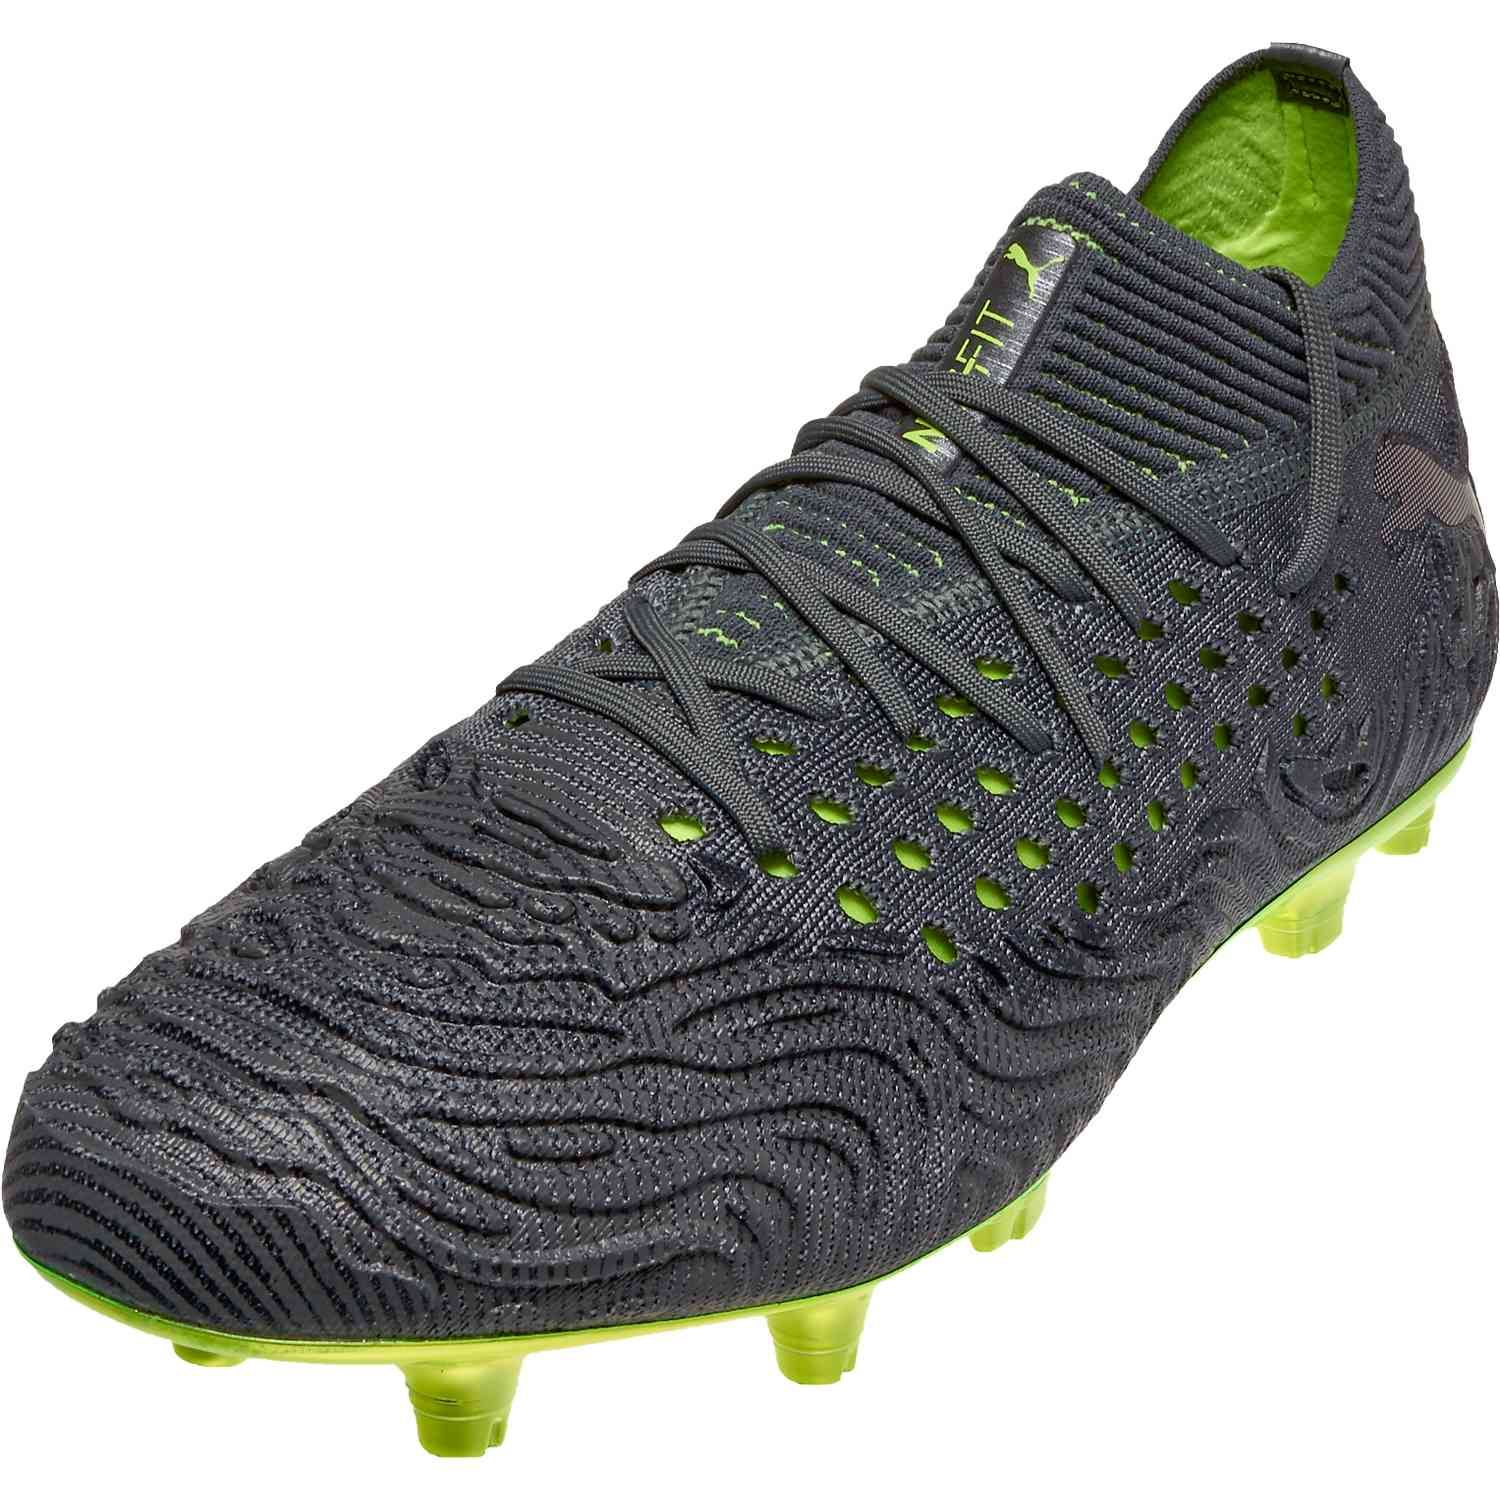 speical offer a few days away buy Puma Limited Edition FUTURE 19.1 Netfit FG – Alter Reality ...